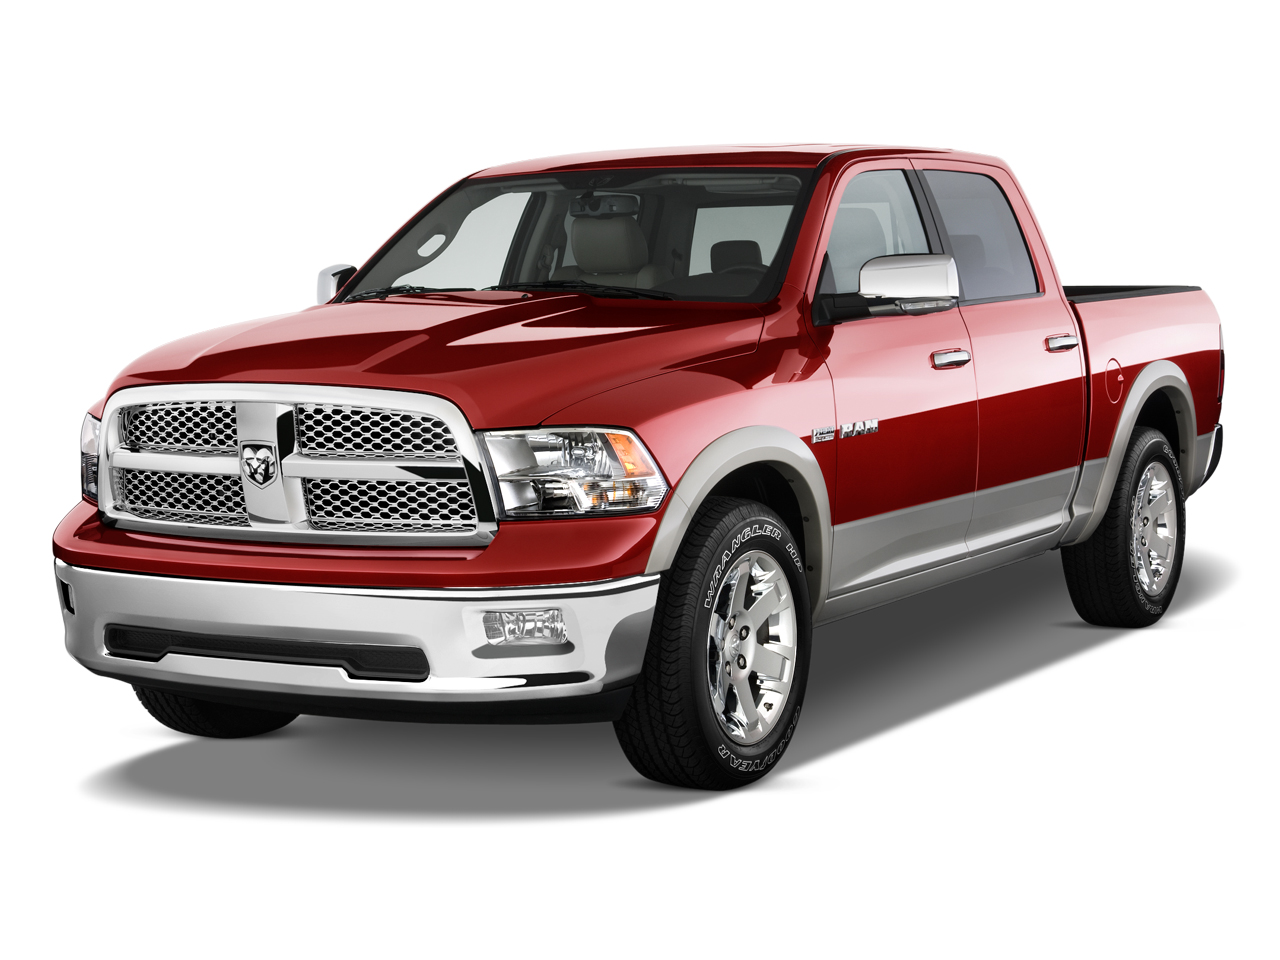 2011 ram 1500 review ratings specs prices and photos the car connection. Black Bedroom Furniture Sets. Home Design Ideas